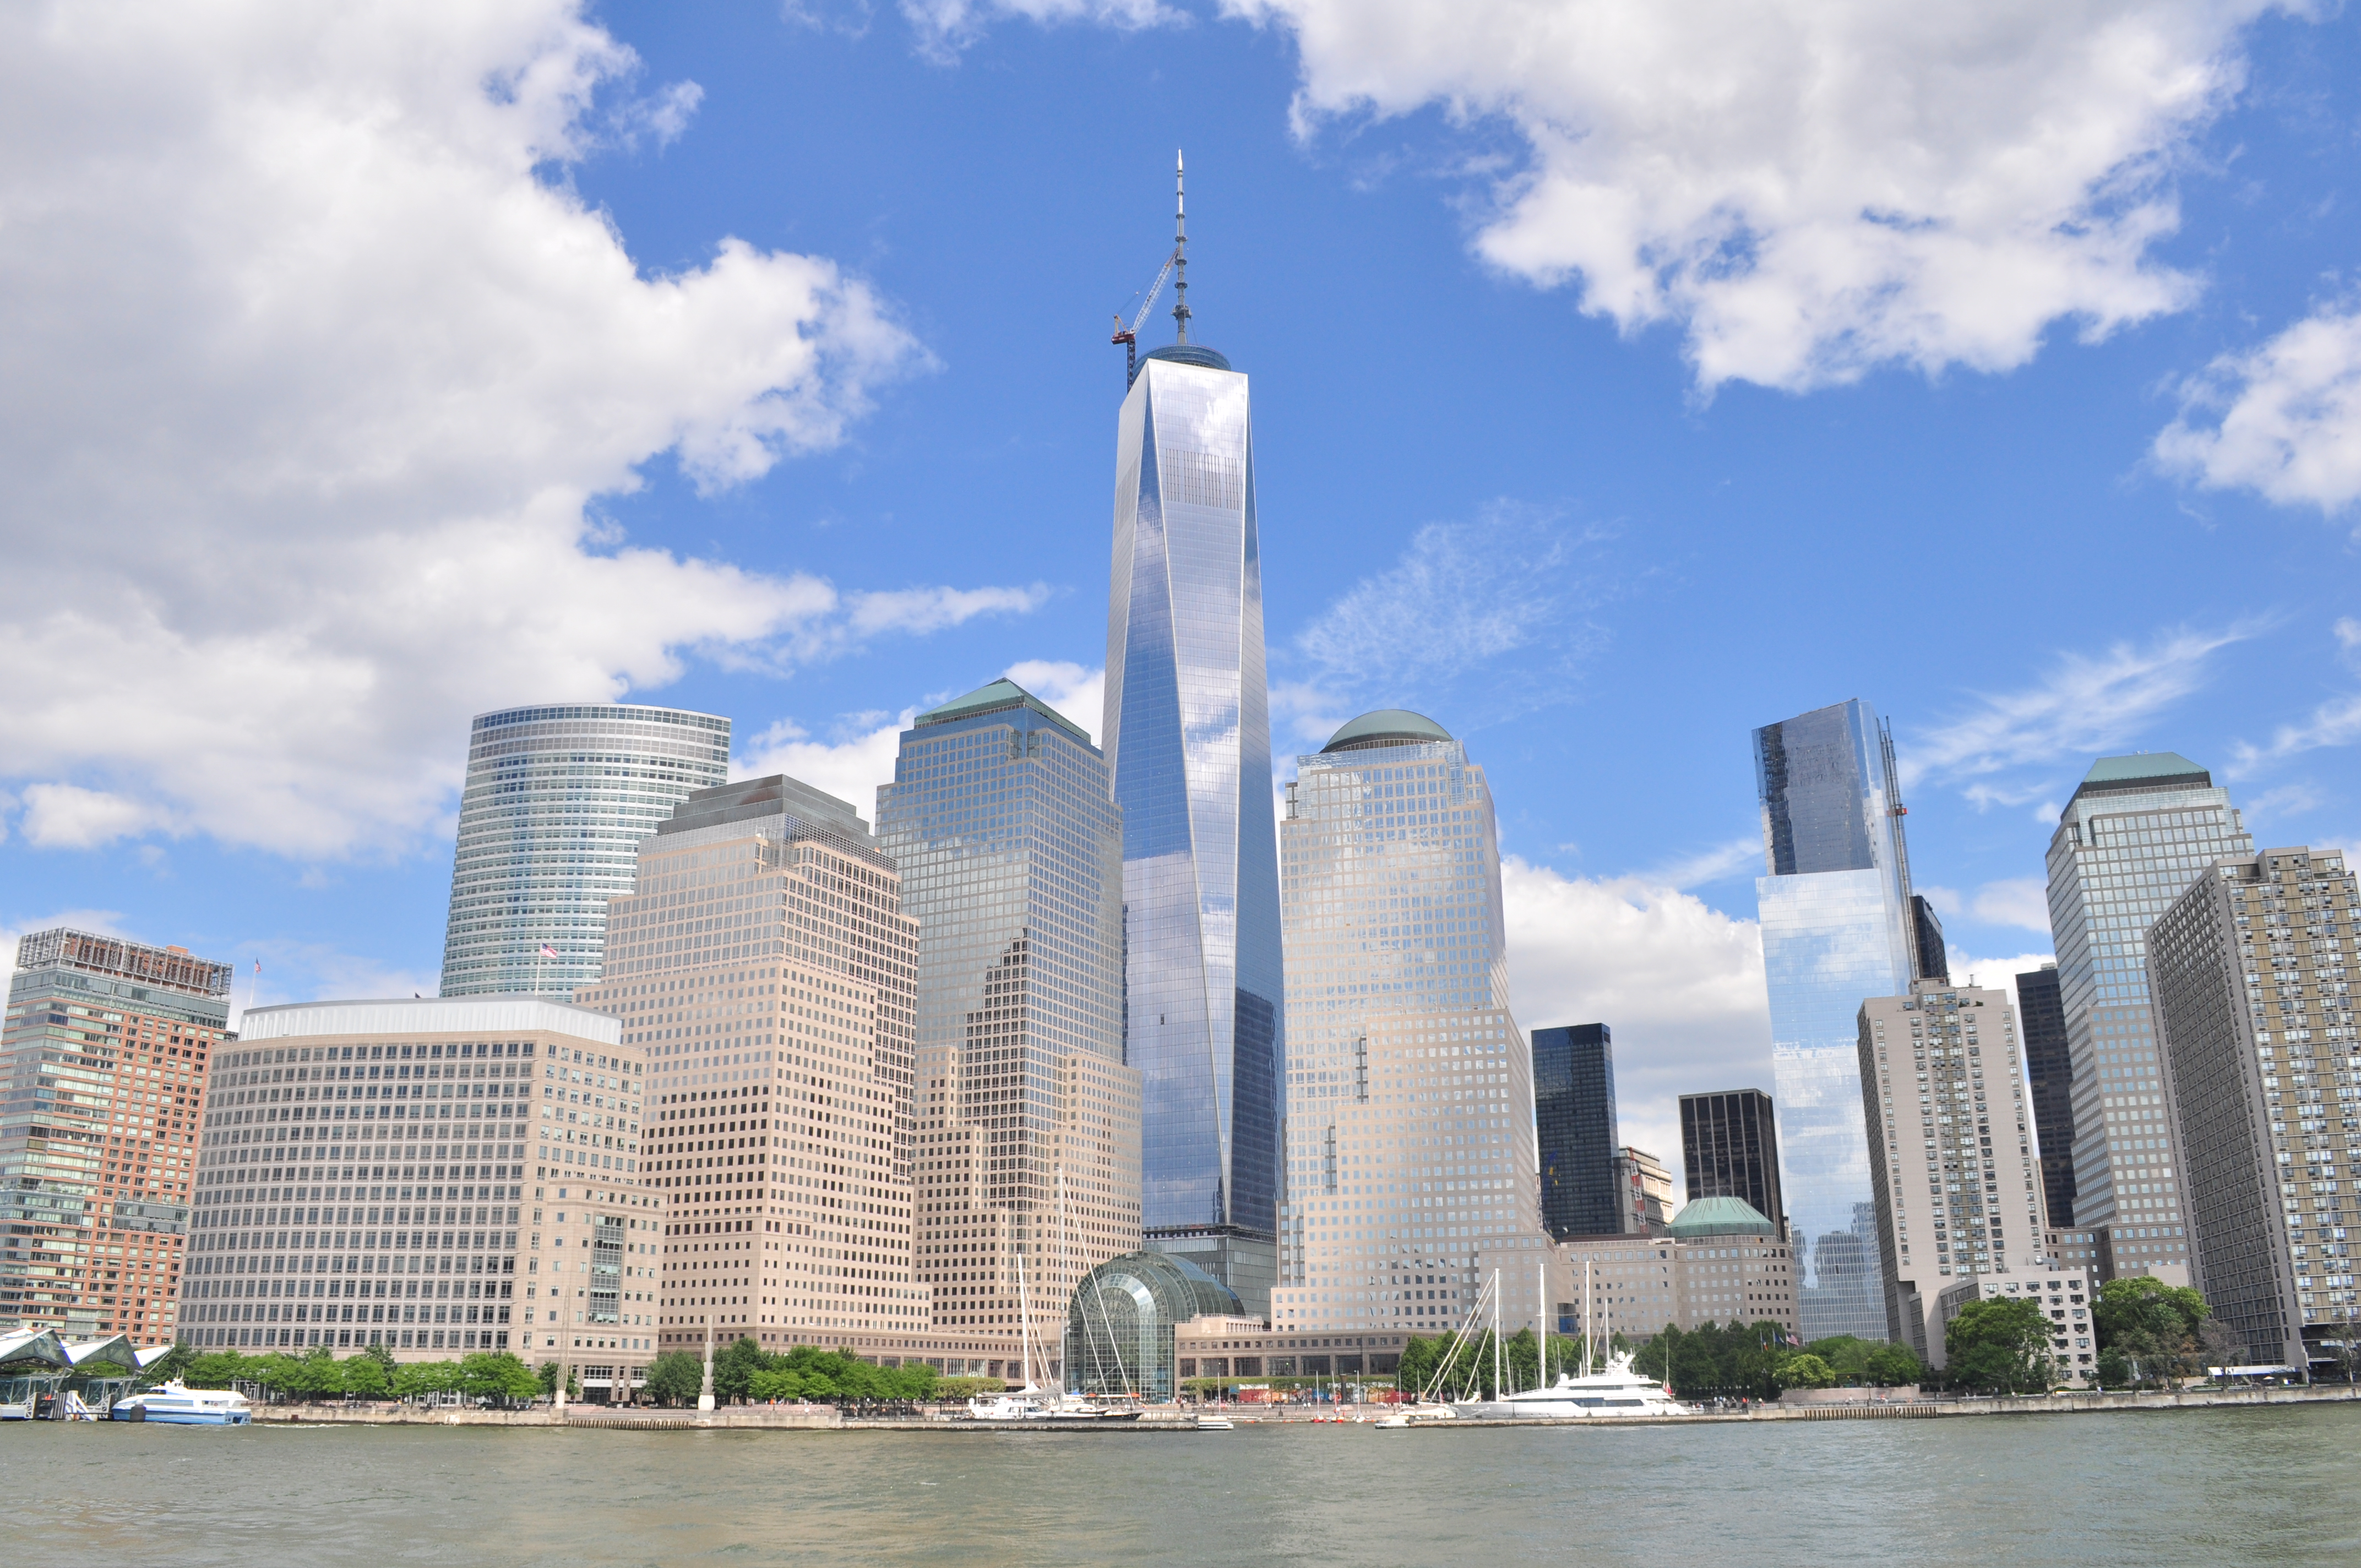 New World Trade Center in new york city.